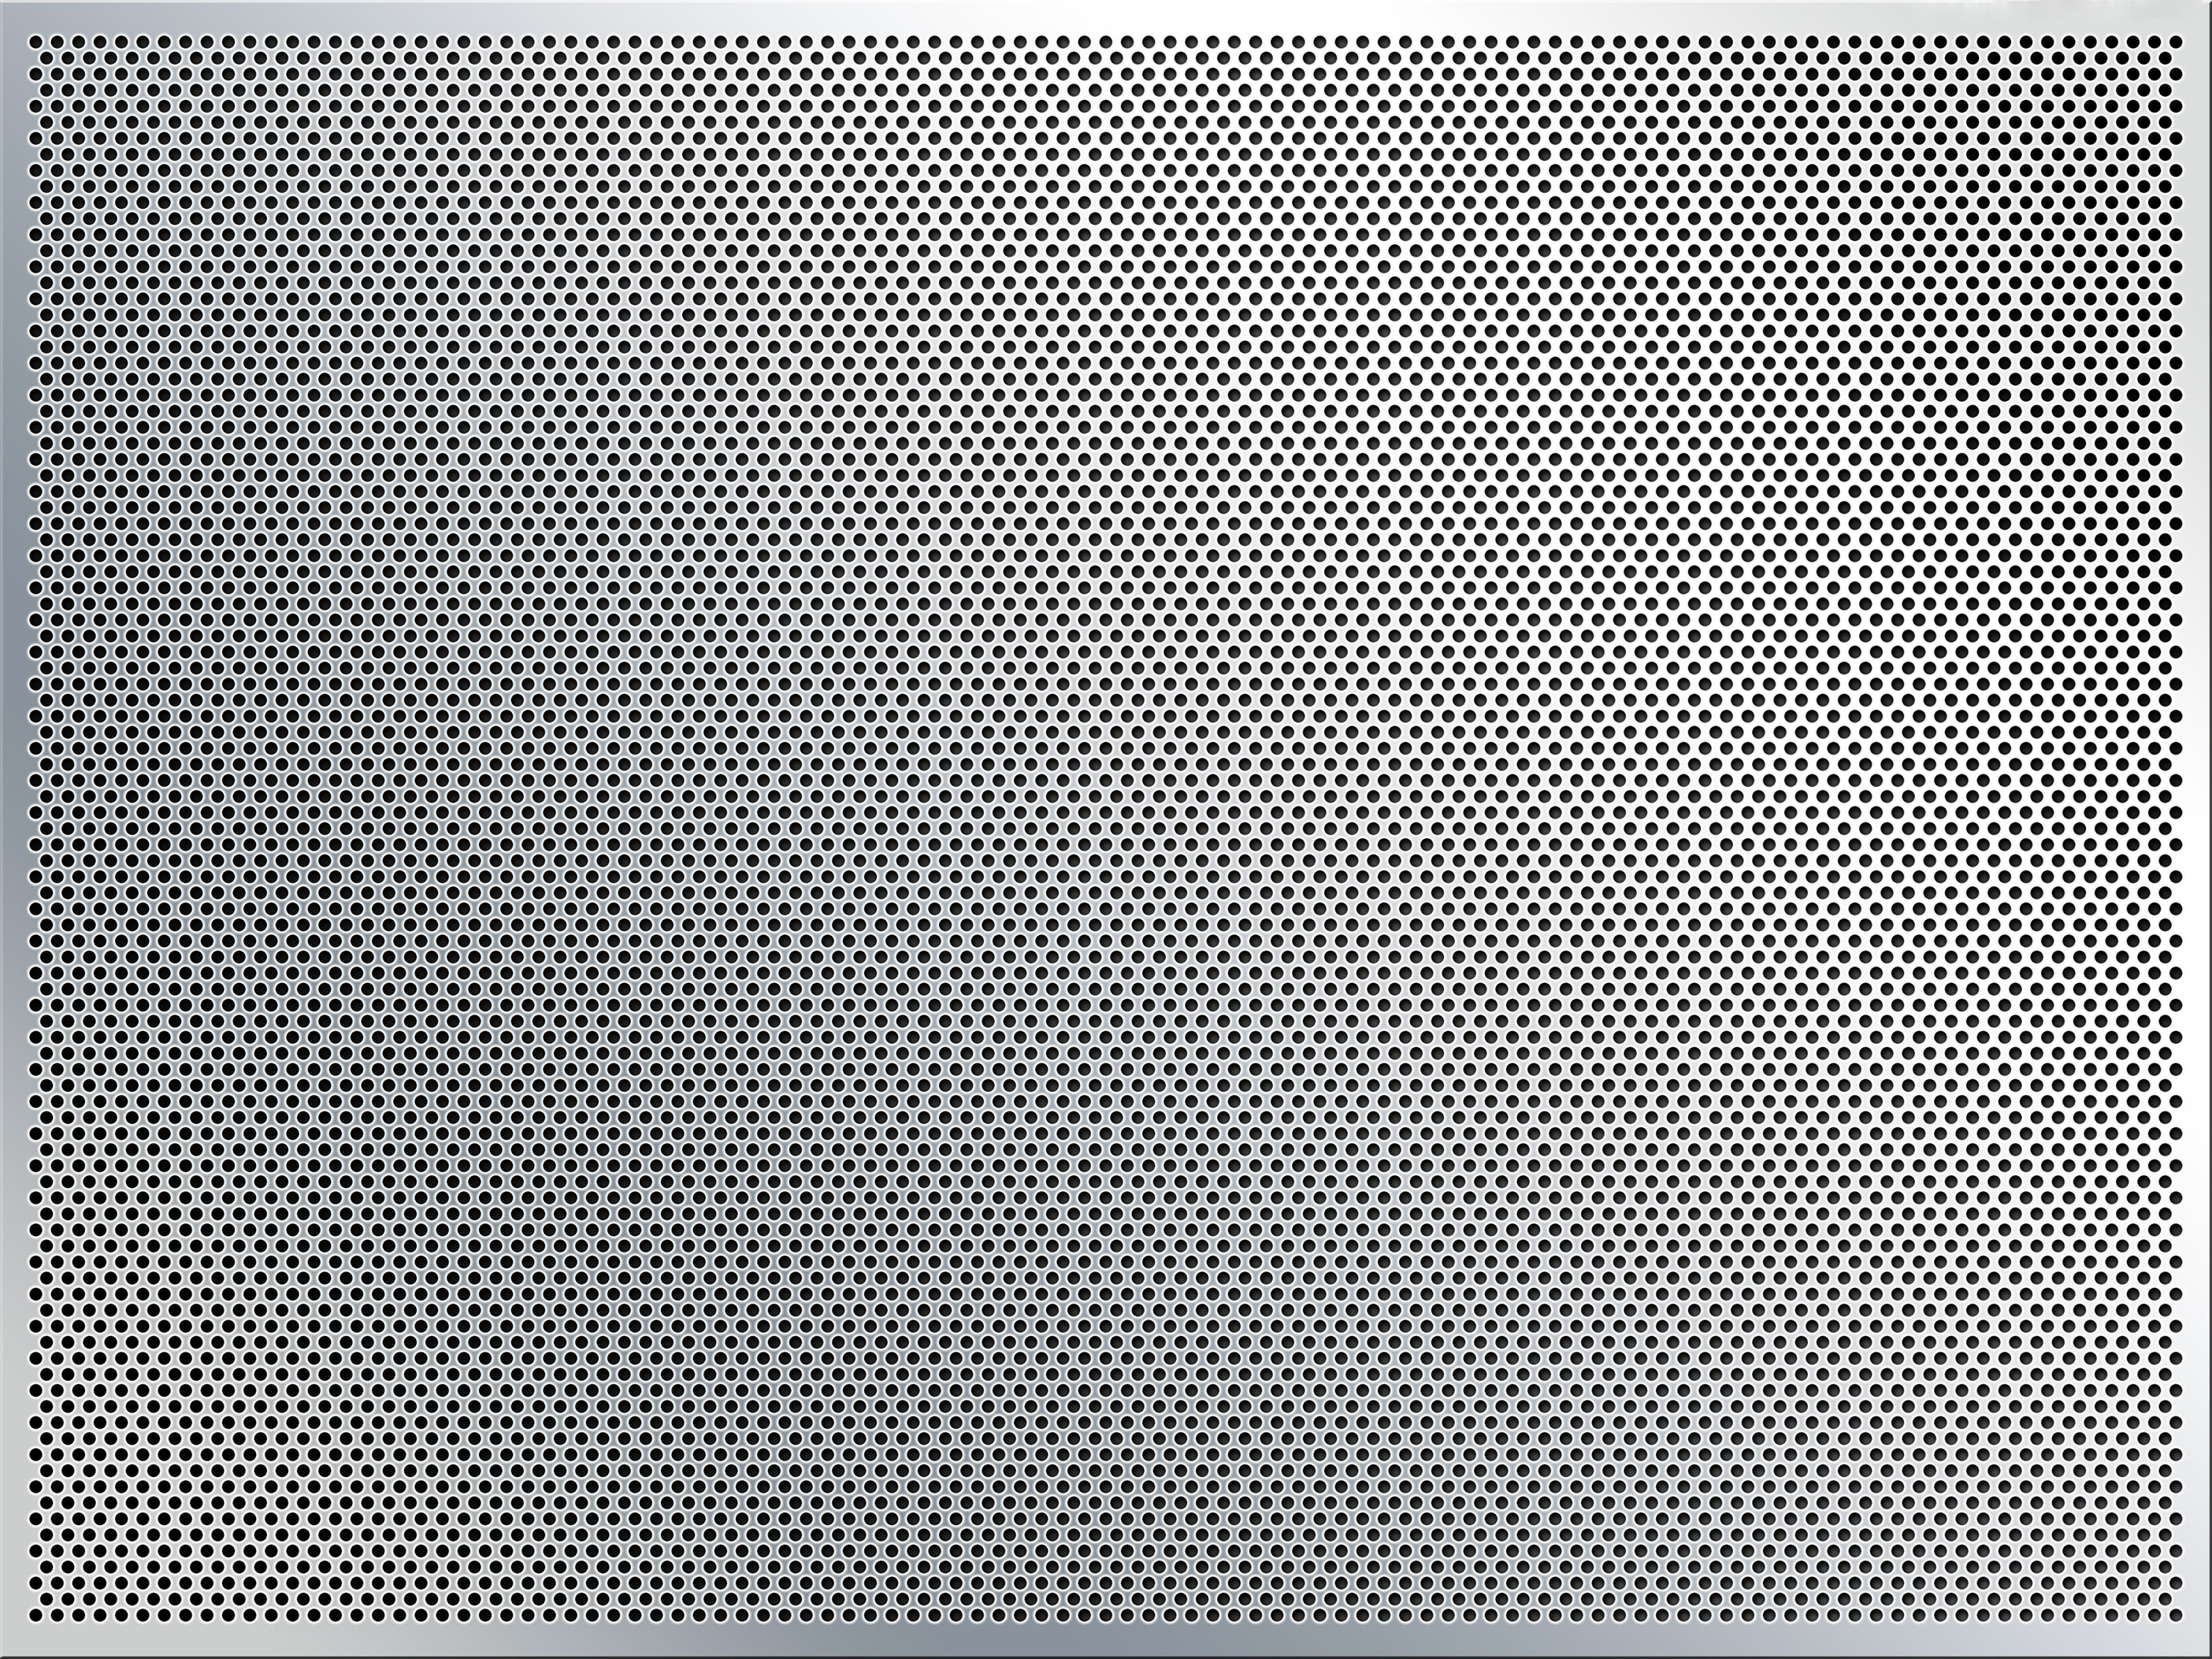 aluminum grid, download photo, background, aluminium texture backgroud, grid metal